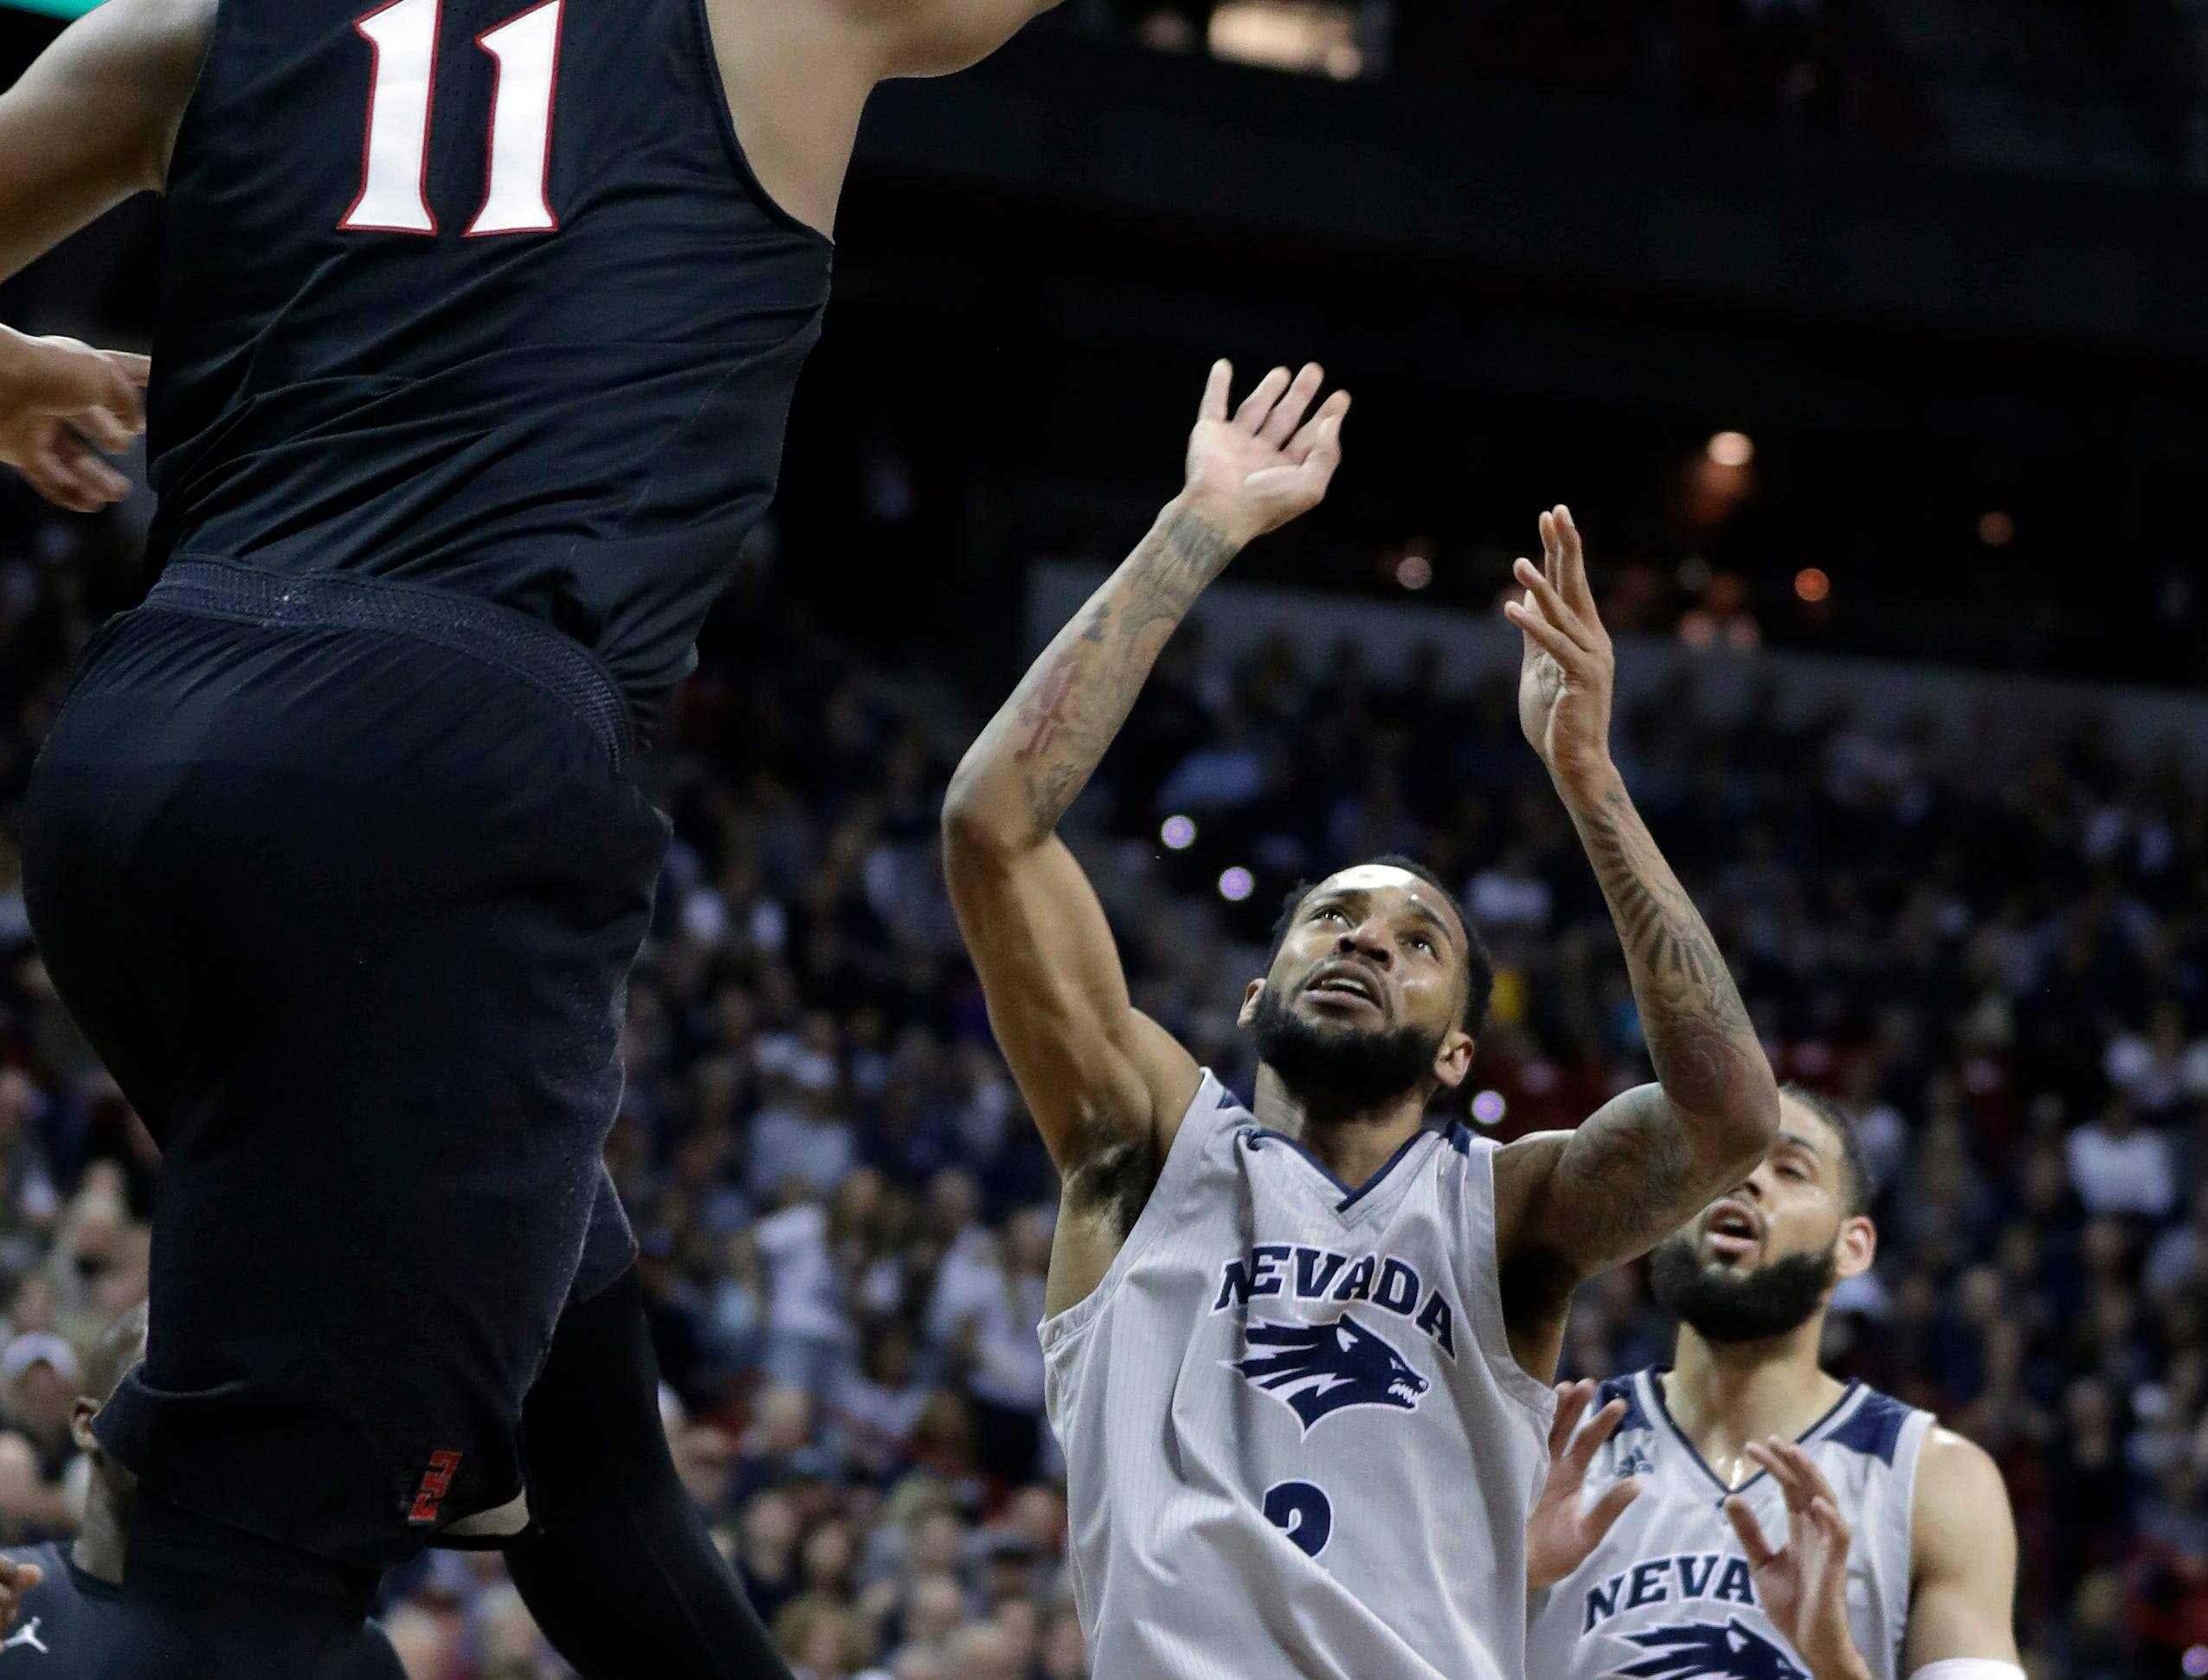 San Diego State's Matt Mitchell (11) defends as Nevada's Corey Henson shoots during the first half of an NCAA college basketball game in the Mountain West Conference men's tournament Friday, March 15, 2019, in Las Vegas. (AP Photo/Isaac Brekken)